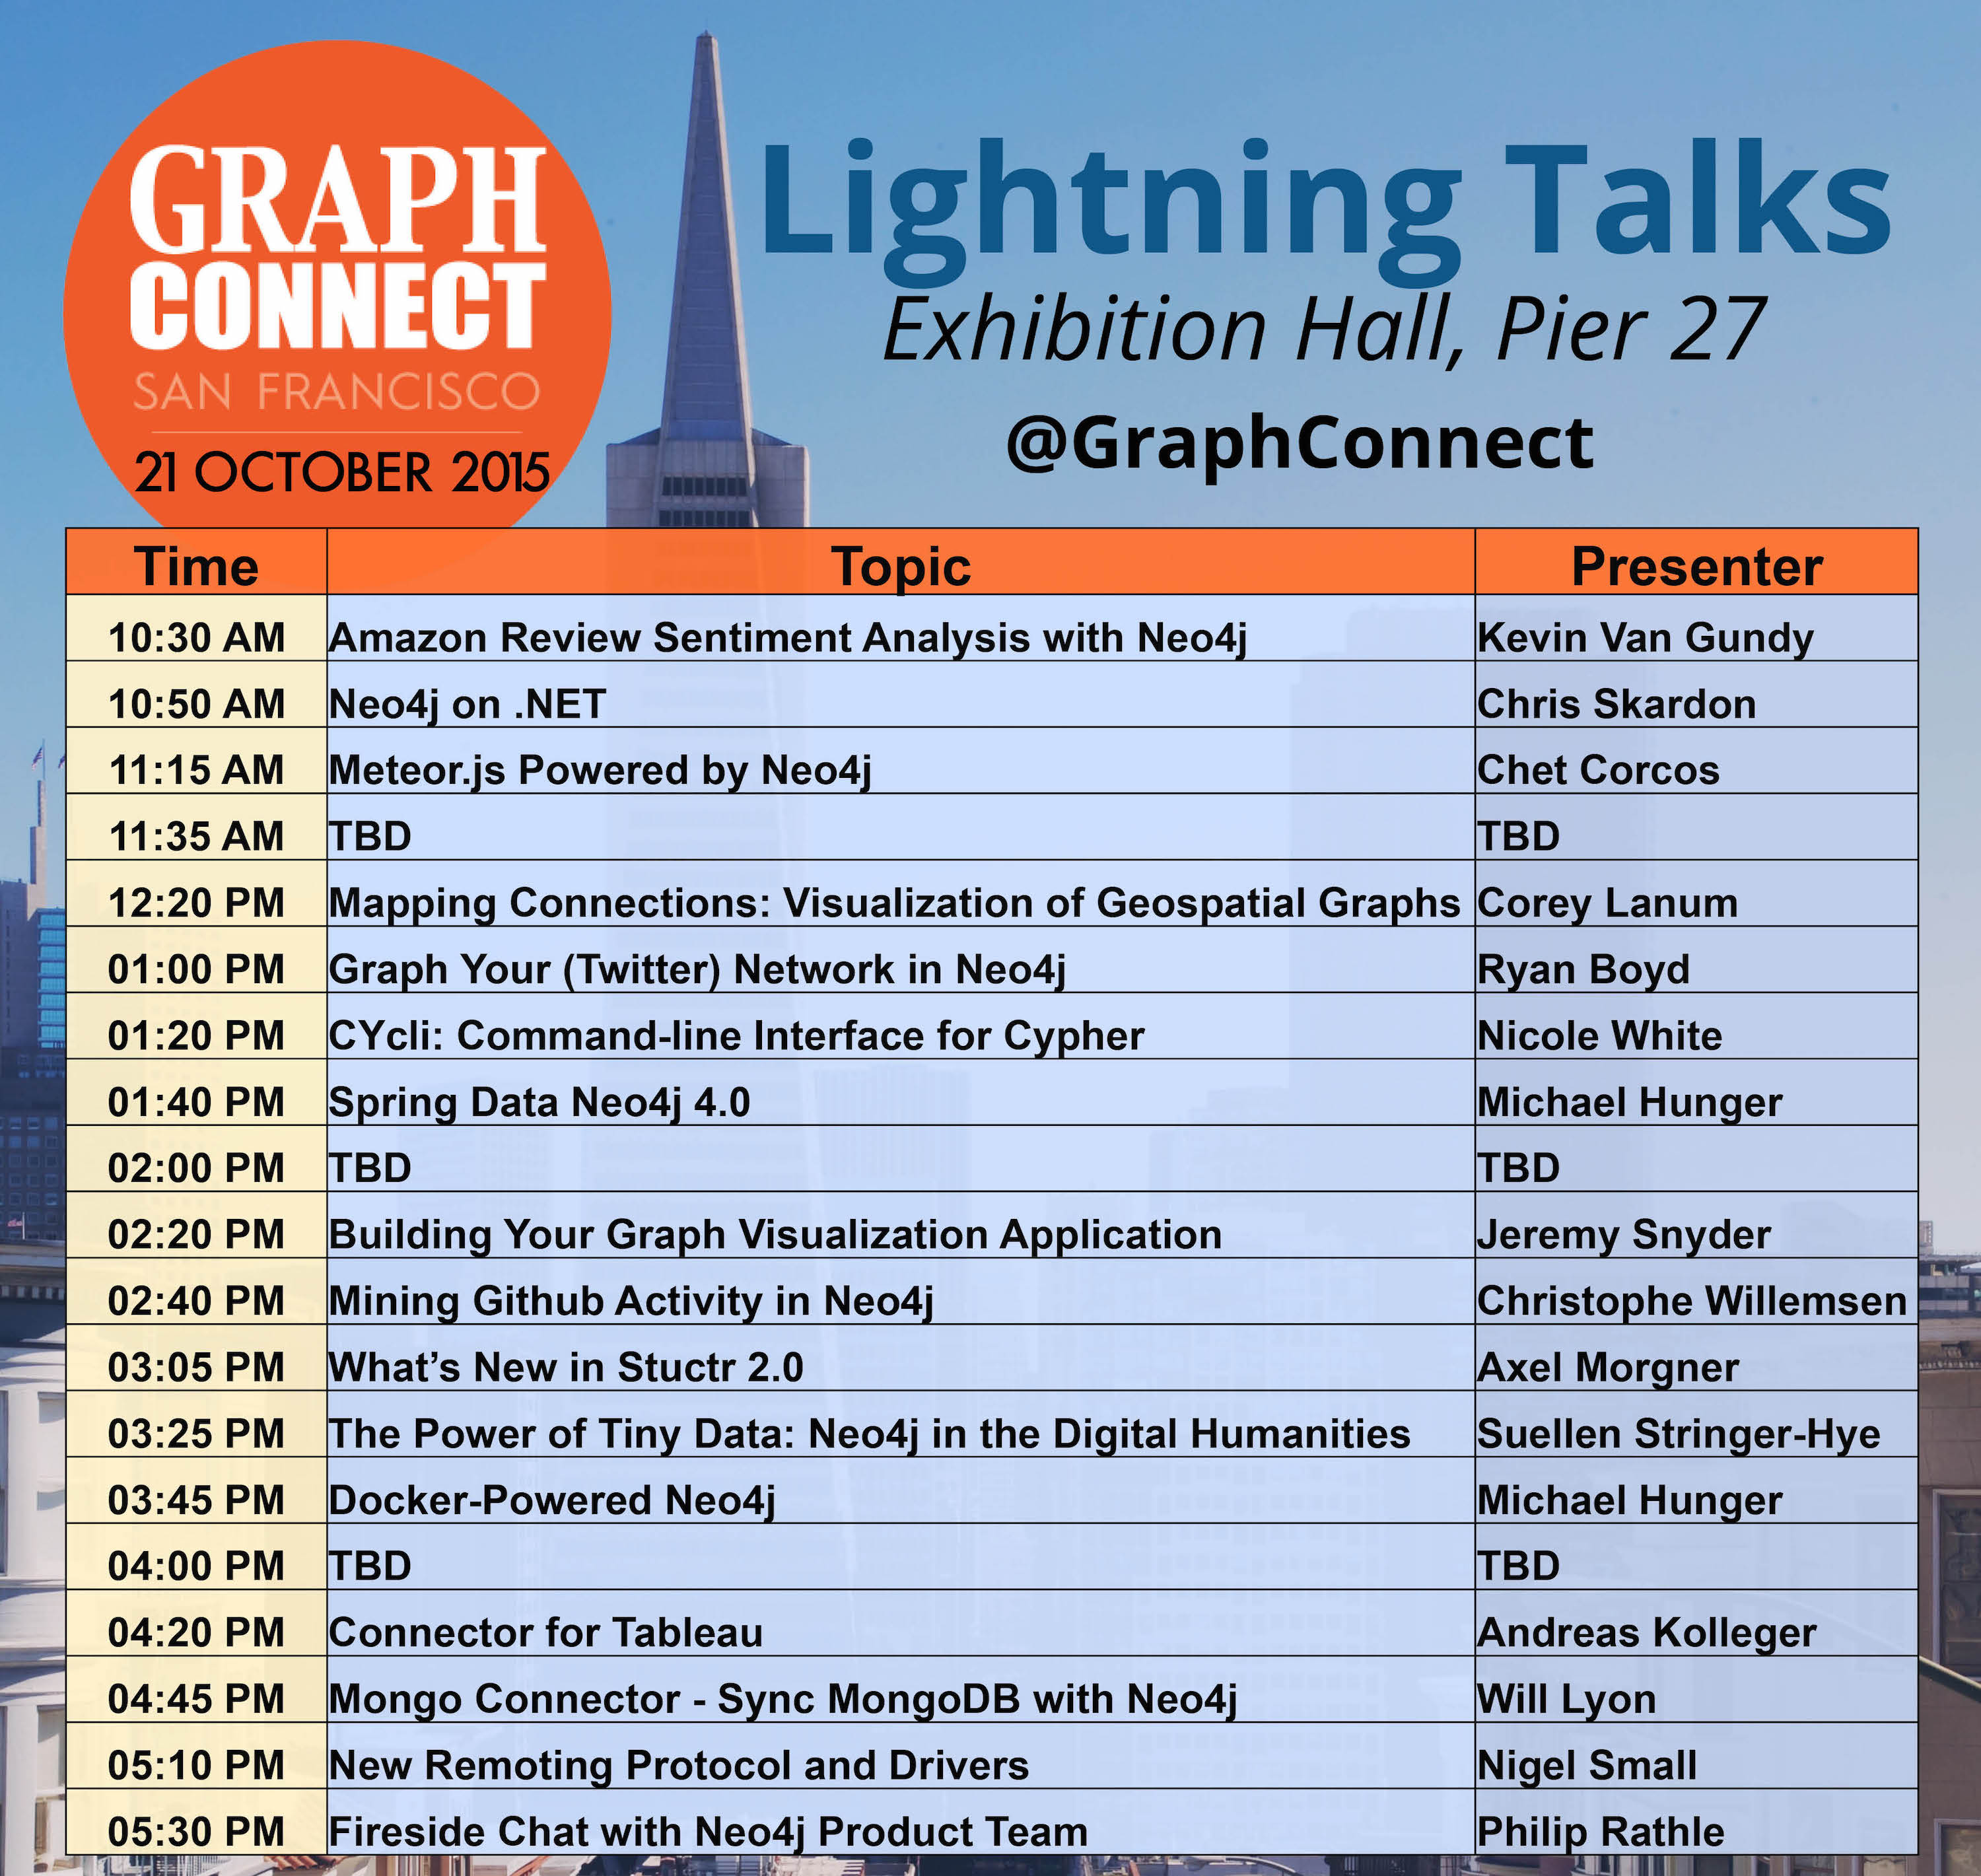 Learn All about the Schedule of Lightning Talks Featured at GraphConnect San Francisco